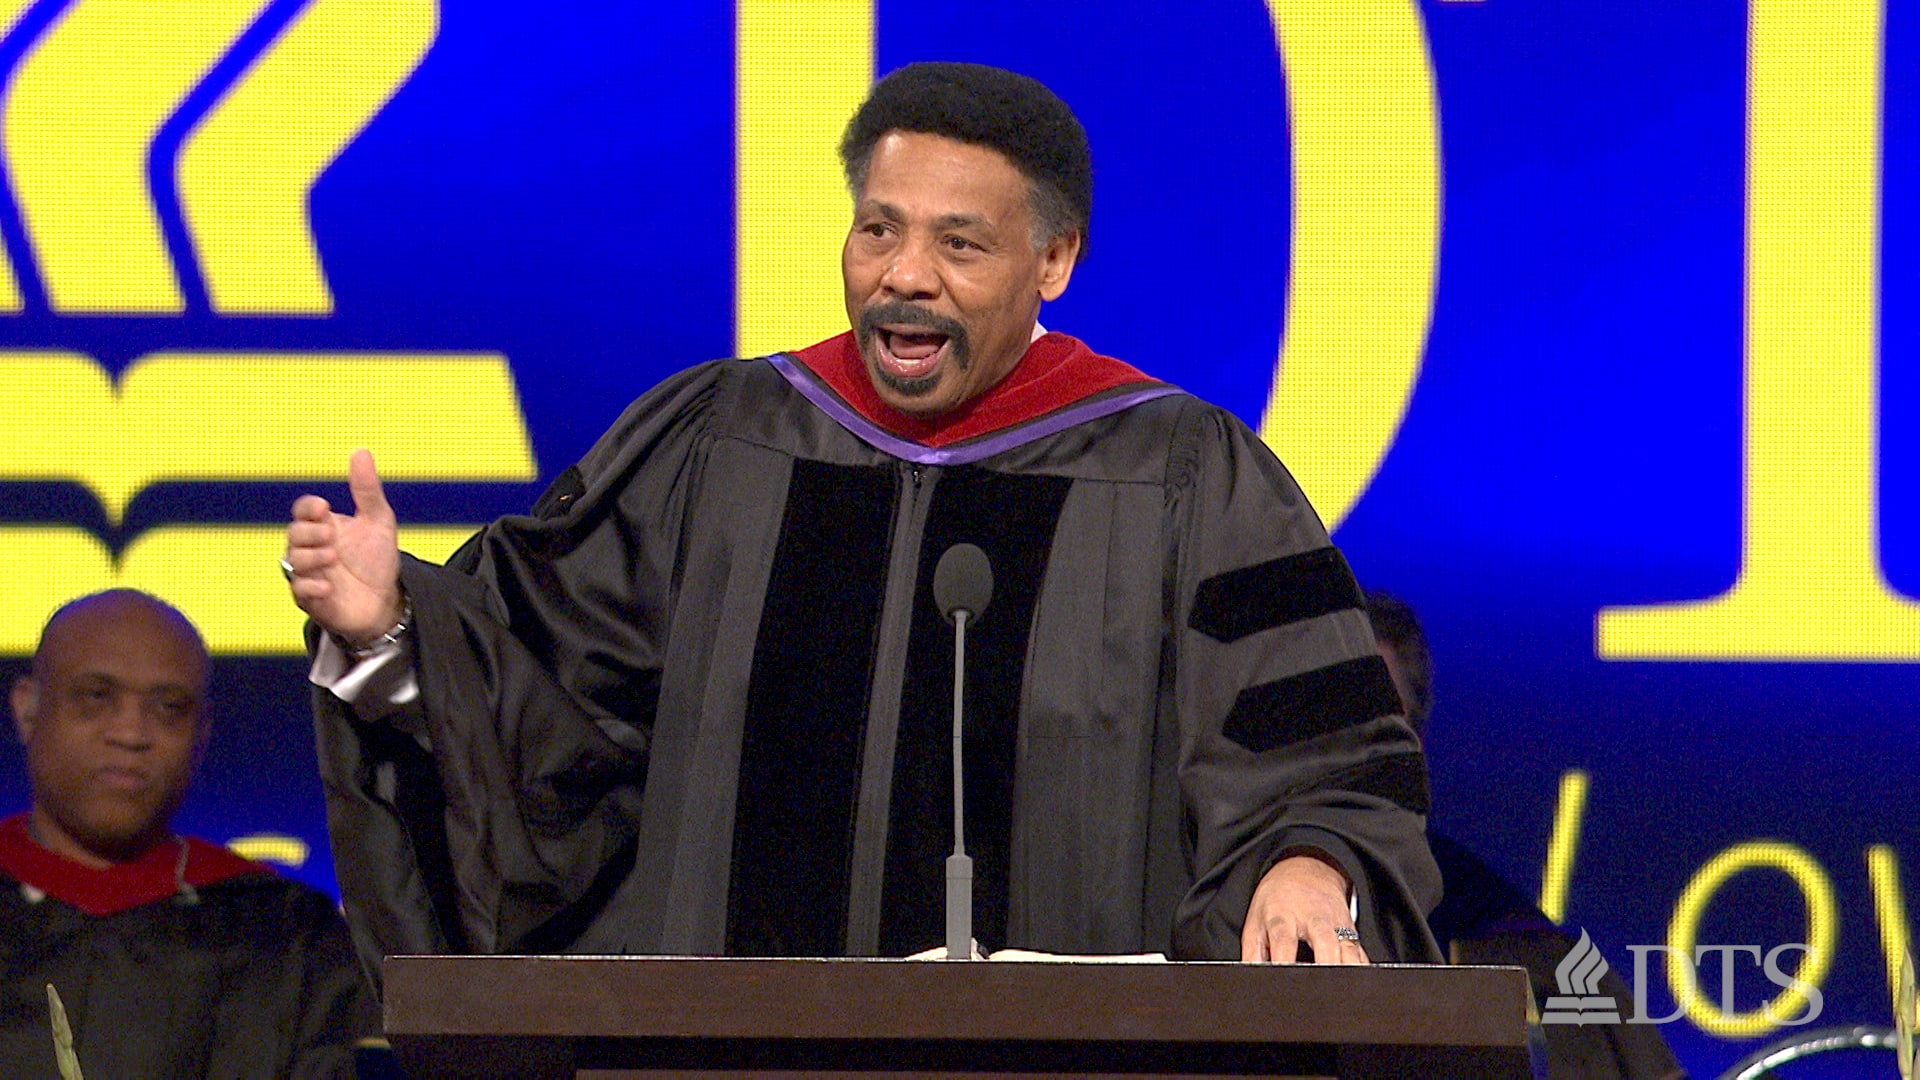 Dr. Tony Evans standing at a podium speaking during DTS commencement